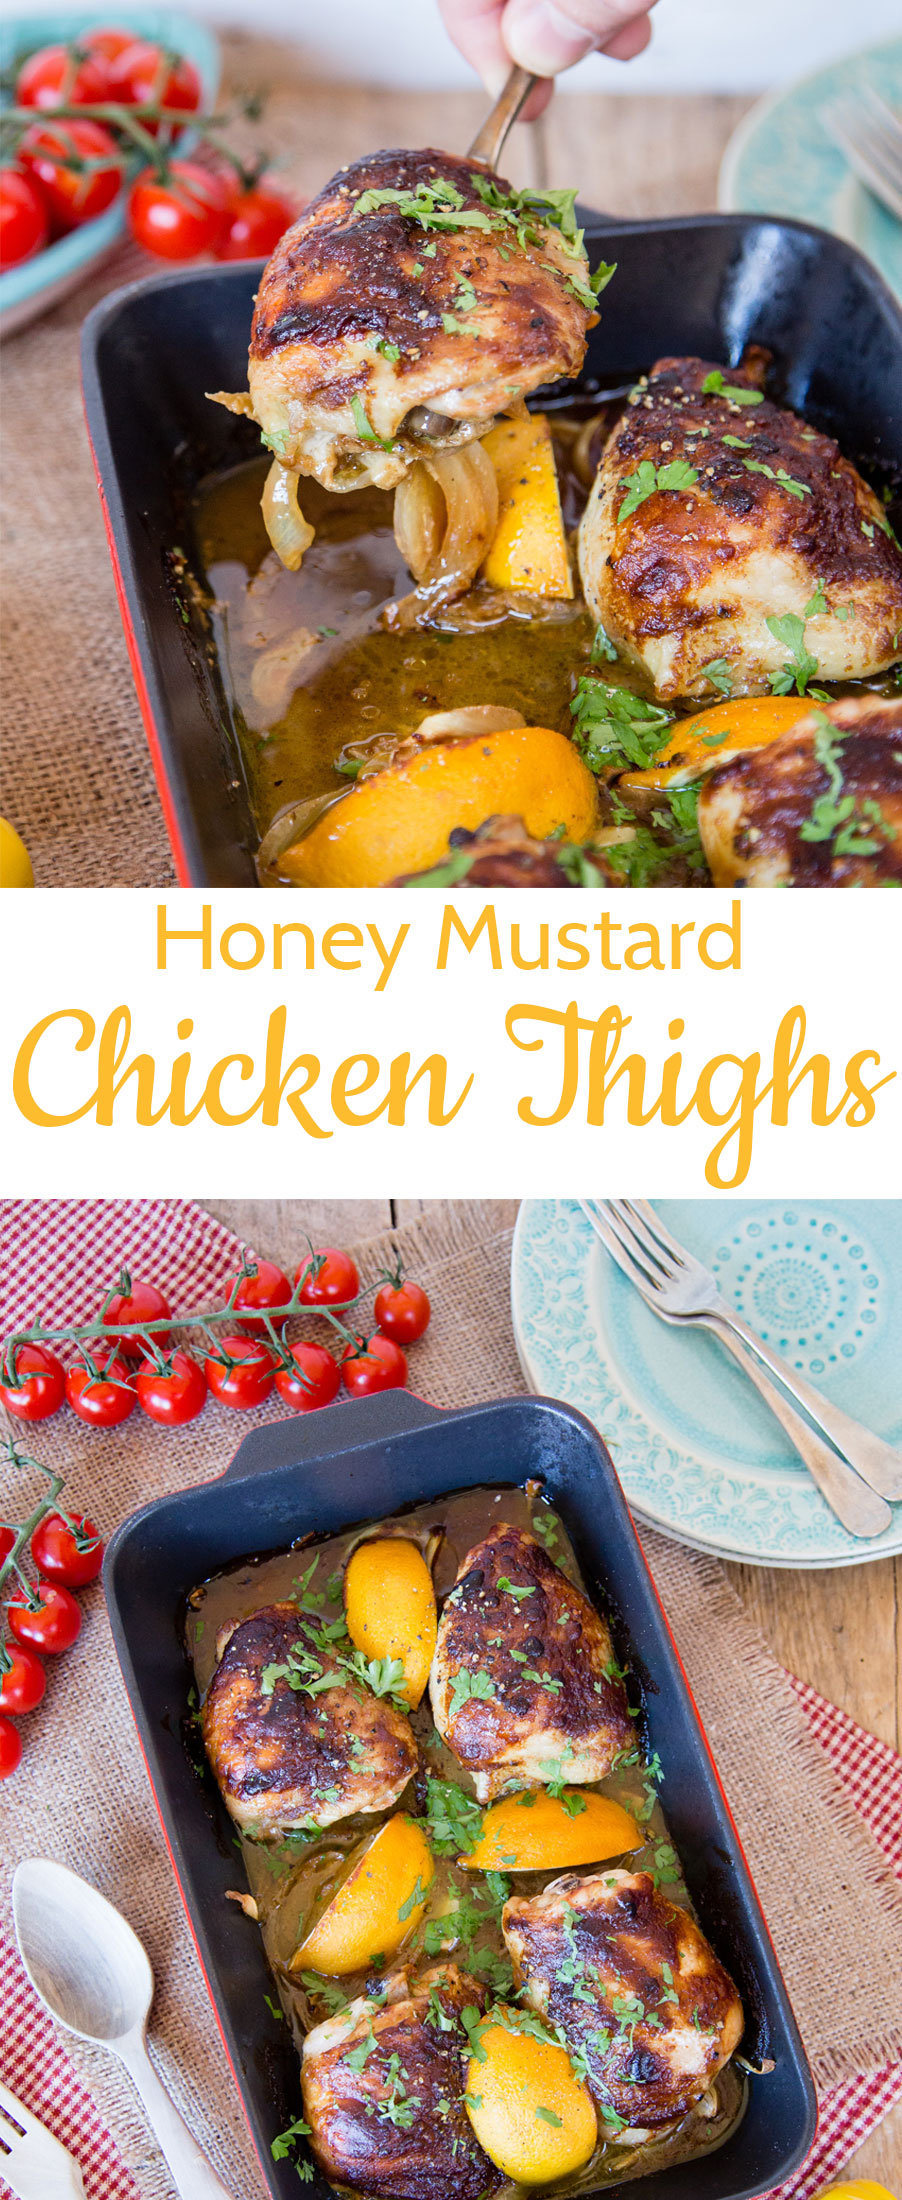 You will love this quick 'n' easy honey mustard chicken tray bake, that makes its own gravy. Simply pop all the ingredients into a roasting pan and bake.